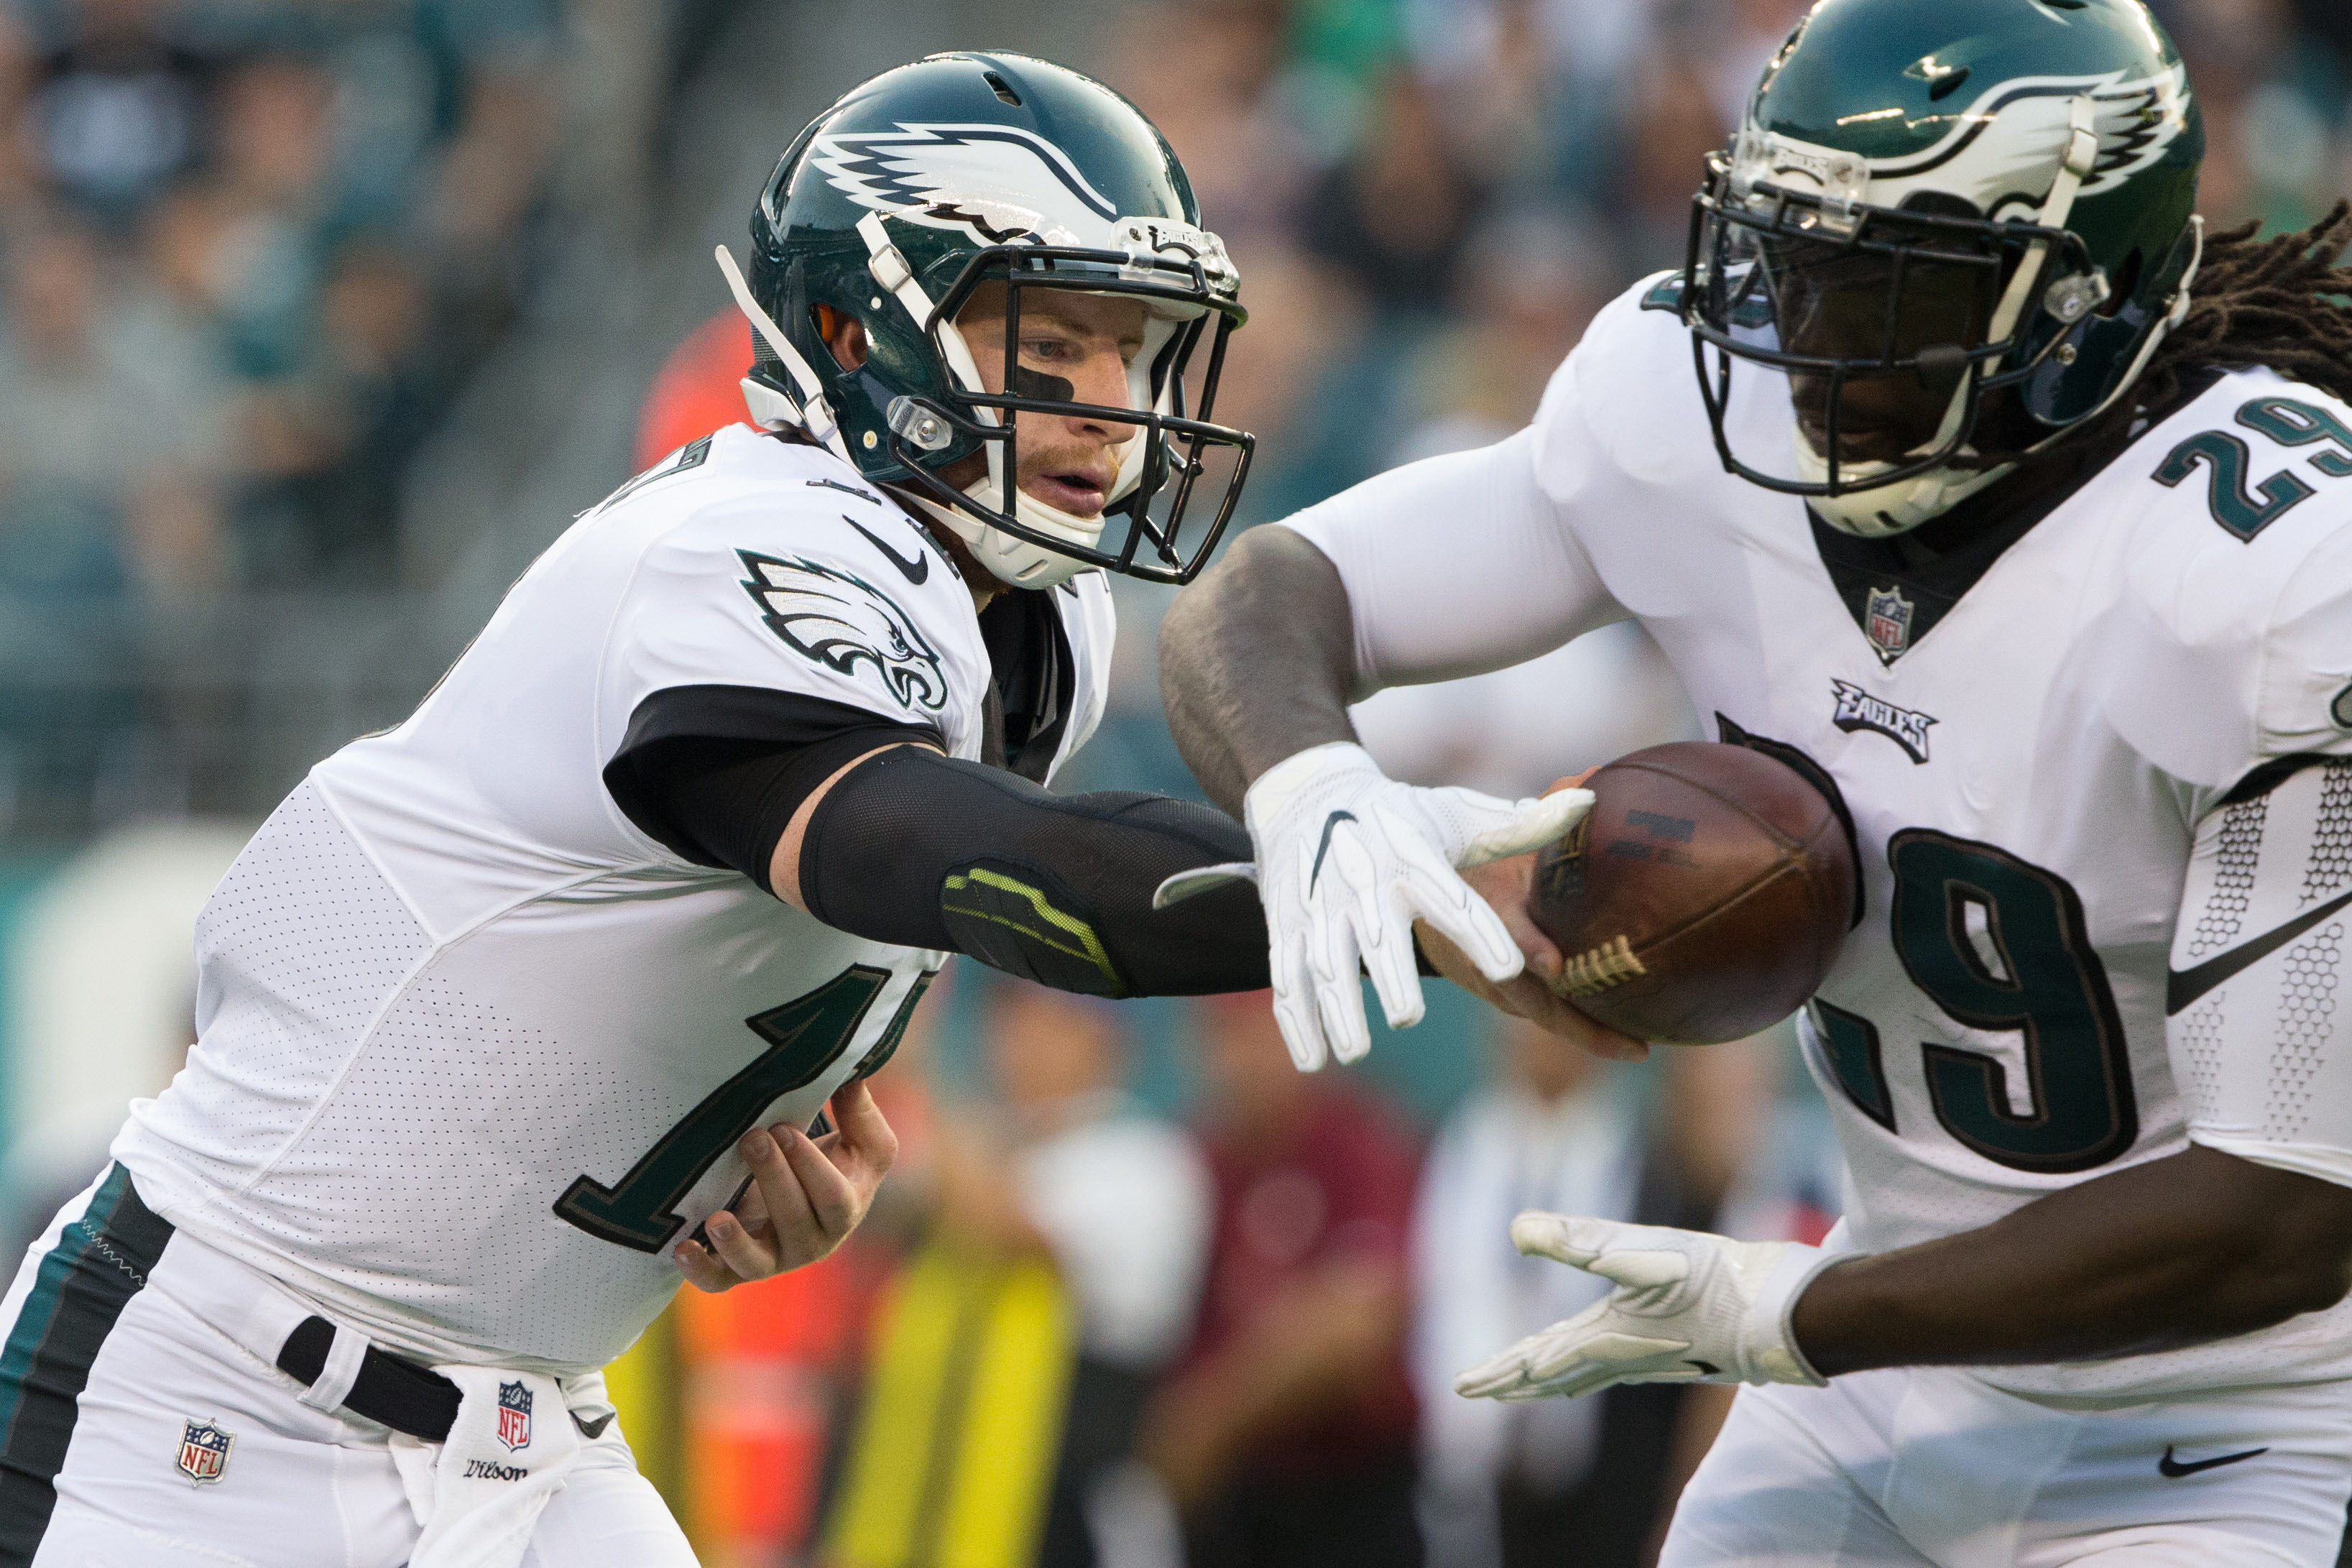 Aug 17, 2017; Philadelphia, PA, USA; Philadelphia Eagles quarterback Carson Wentz (11) hands off to running back LeGarrette Blount (29) against the Buffalo Bills during the first quarter at Lincoln Financial Field. Mandatory Credit: Bill Streicher-USA TODAY Sports